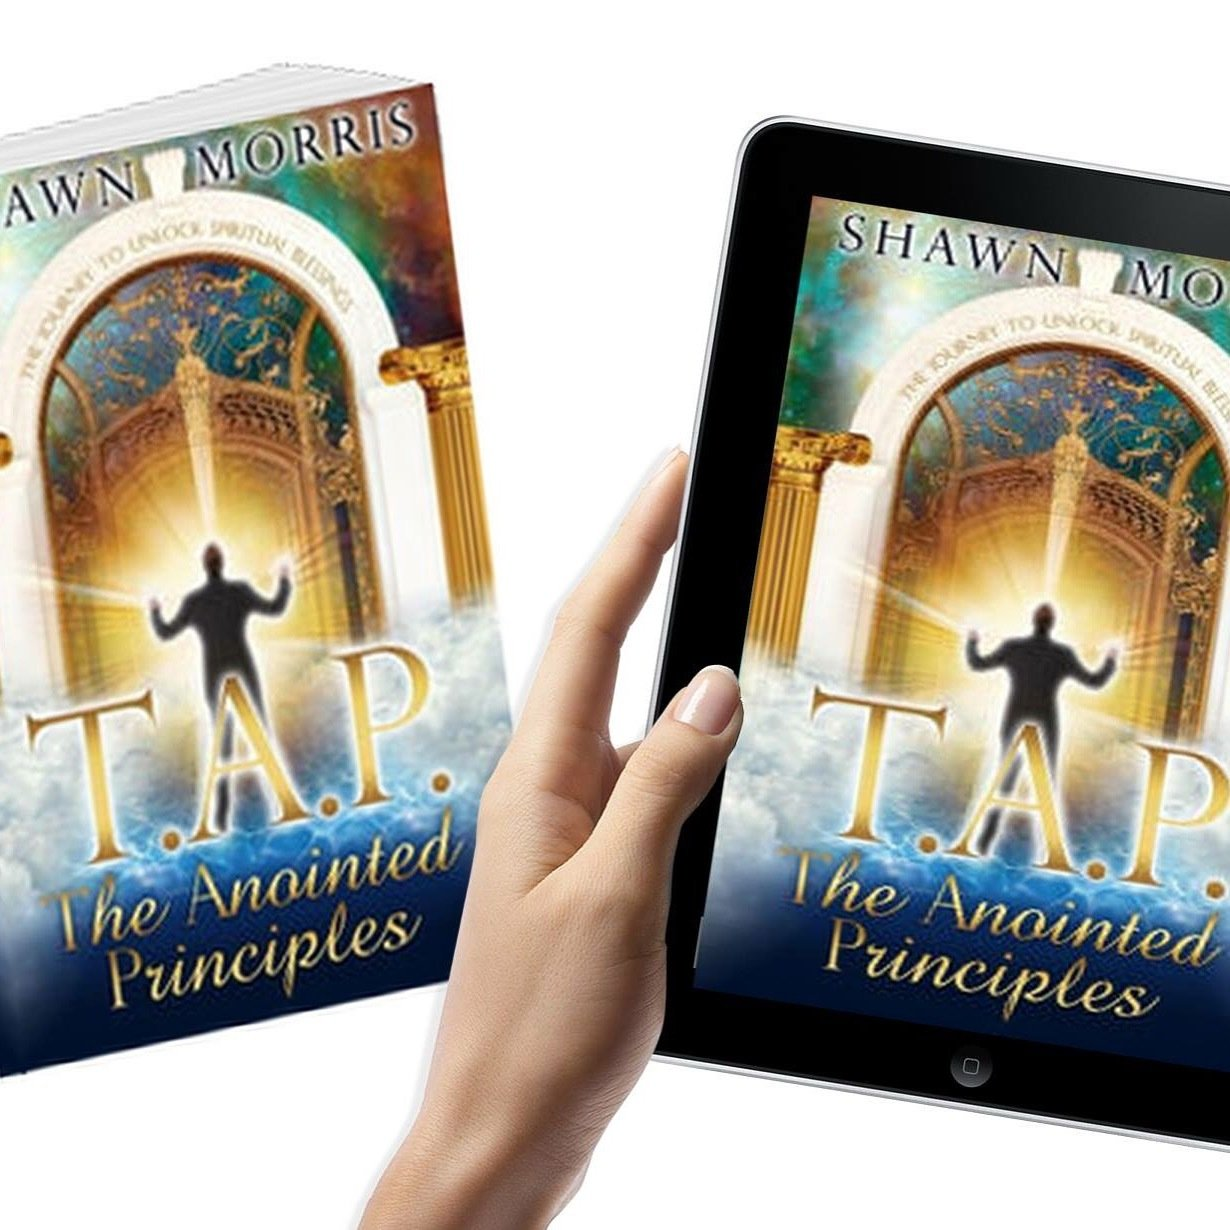 T.A.P. The Anointed Principles